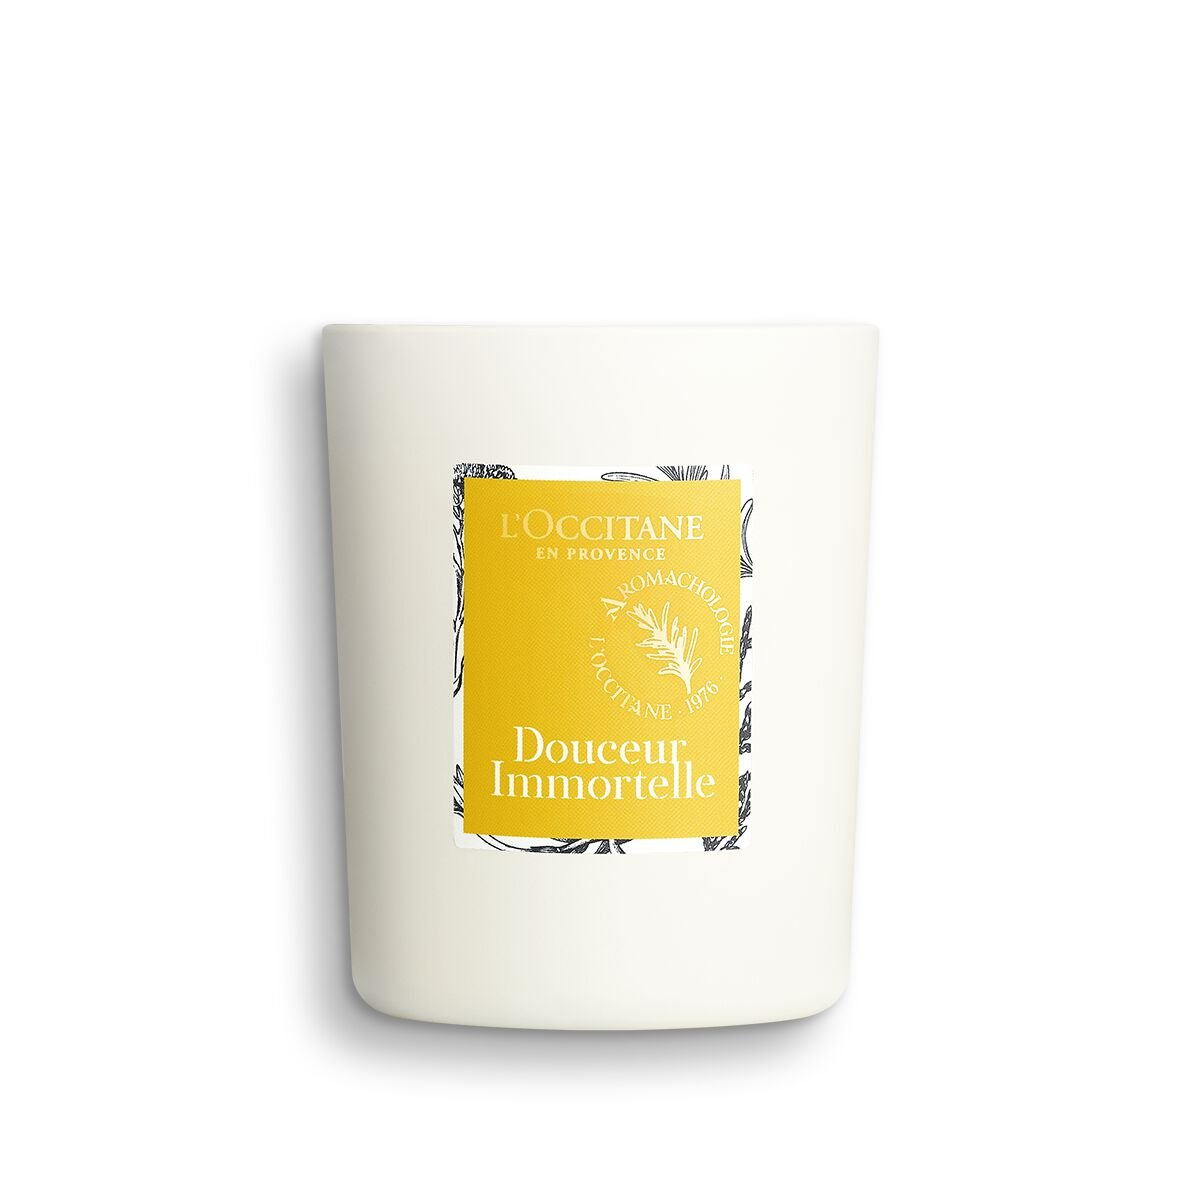 Douceur Immortelle Uplifting Candle 140 g. - L'OCCITANE